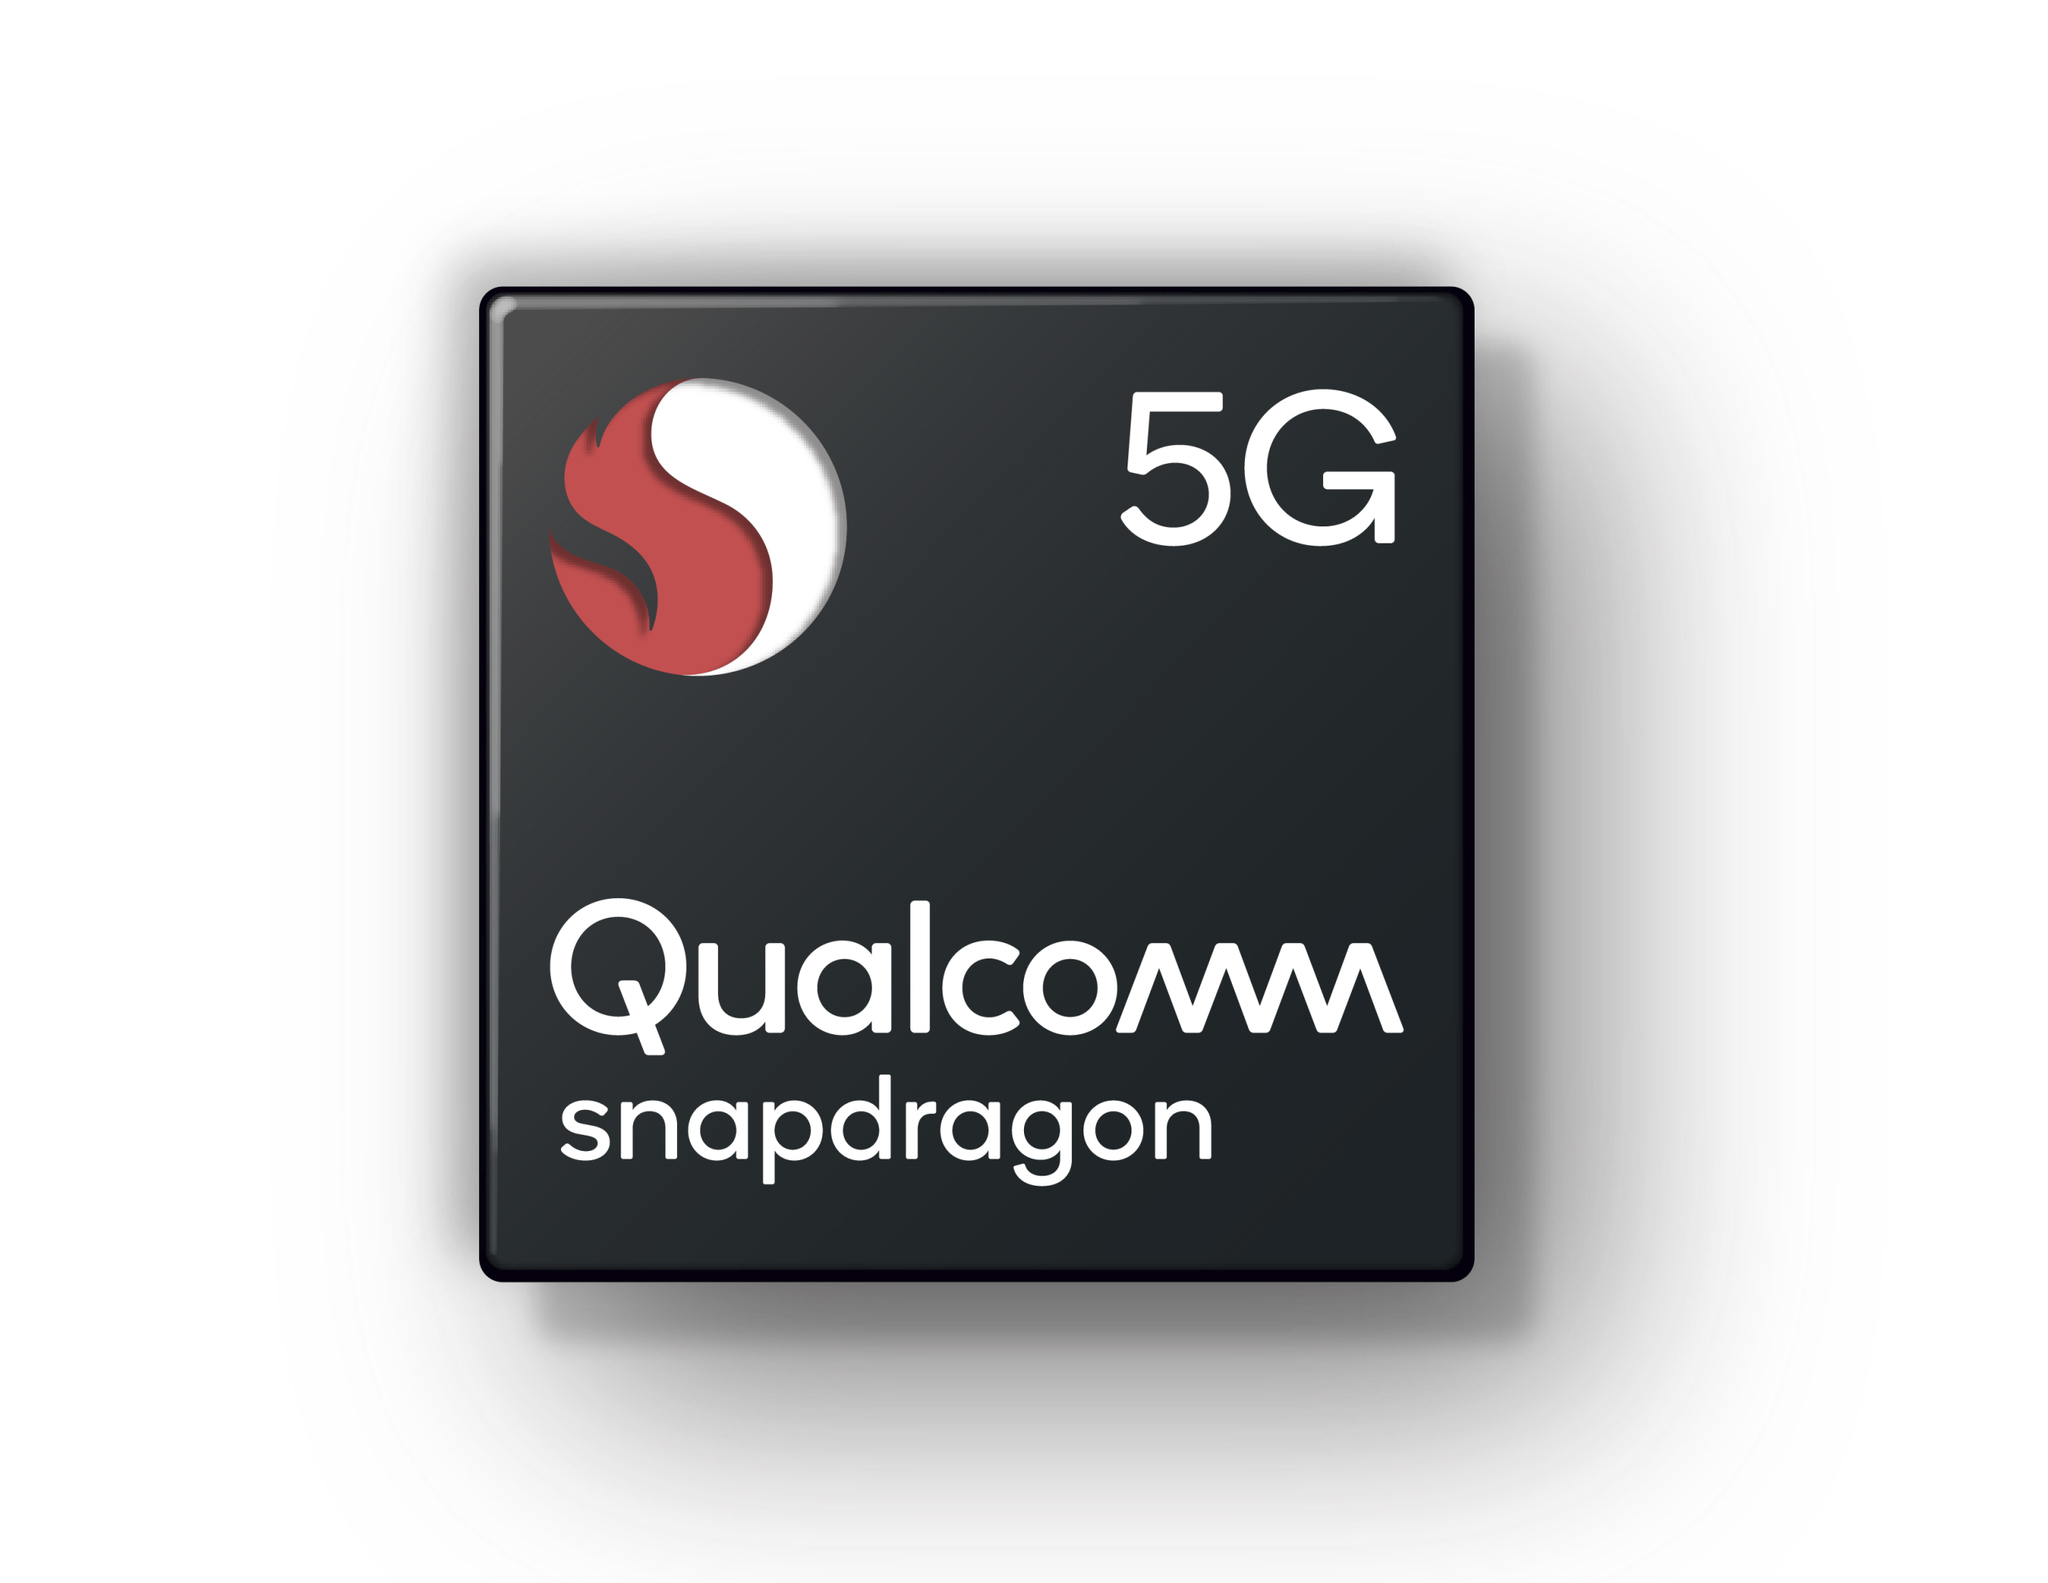 [IFA 2019]  Qualcomm is speeding up the commercialization of 5G globally with multiple Snapdragon 5G Platforms